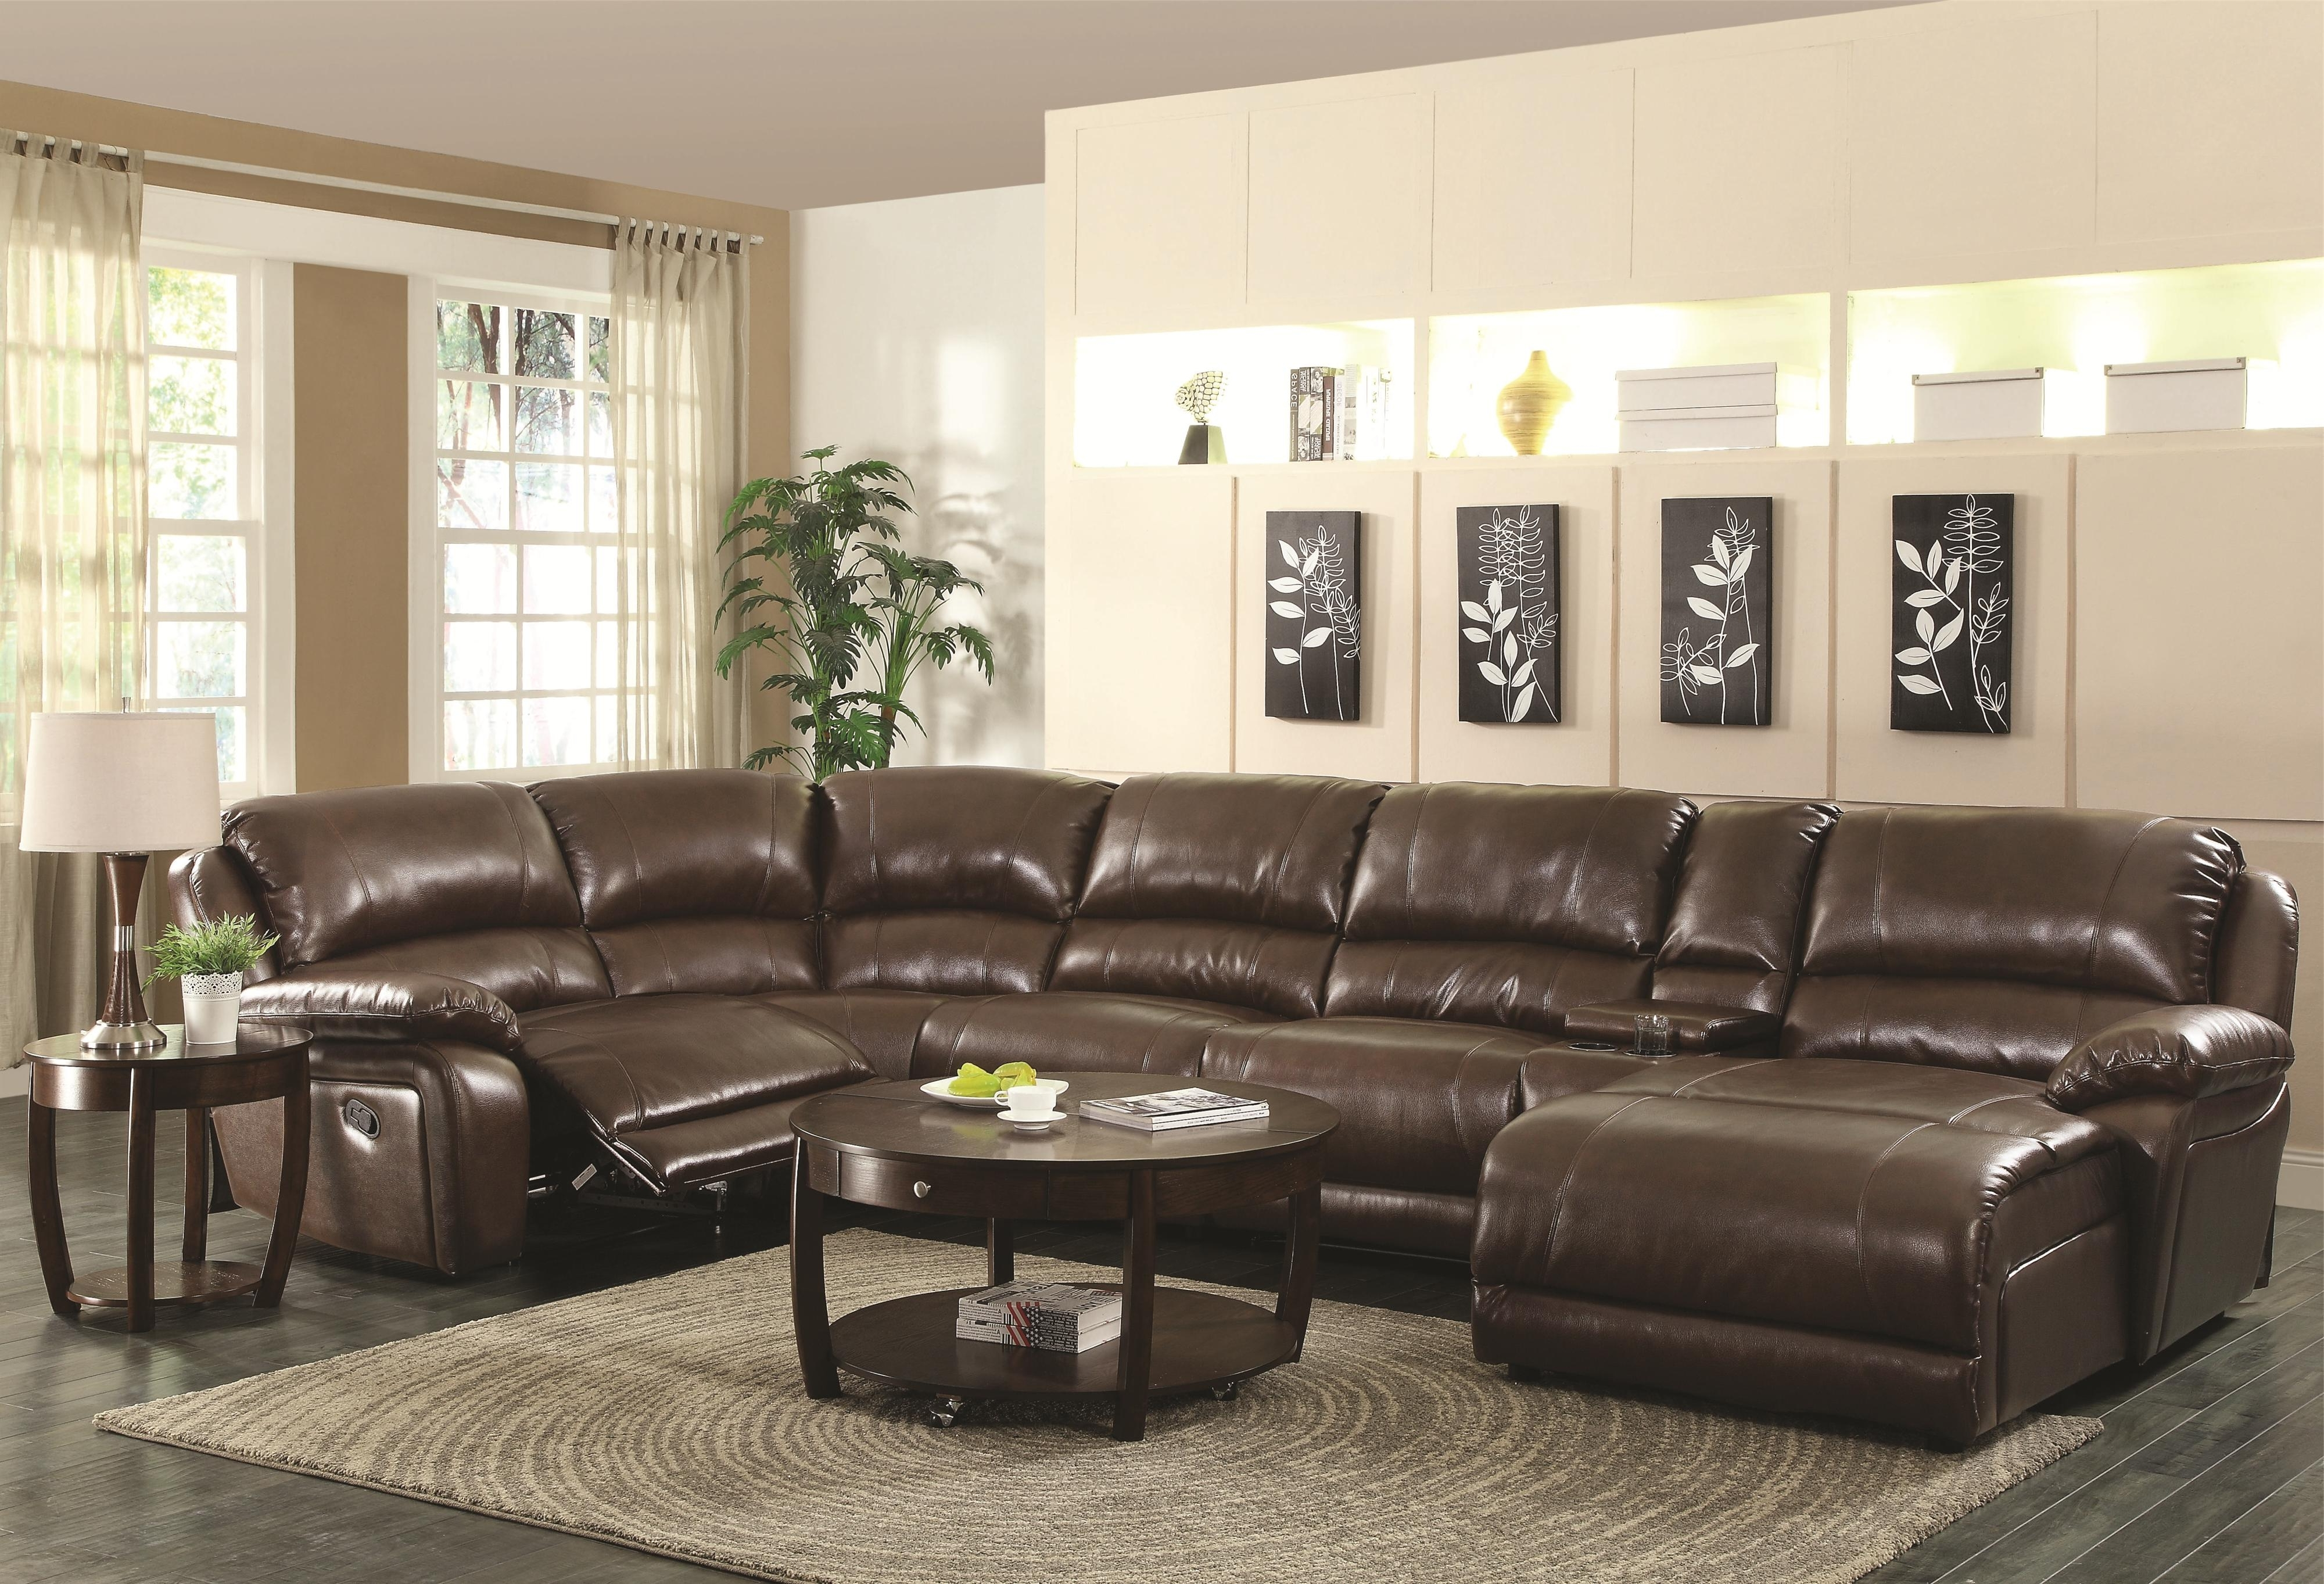 Widely Used Recliners Chairs & Sofa : Interior Espresso Brown Leather Inside Curved Sectional Sofas With Recliner (View 15 of 15)